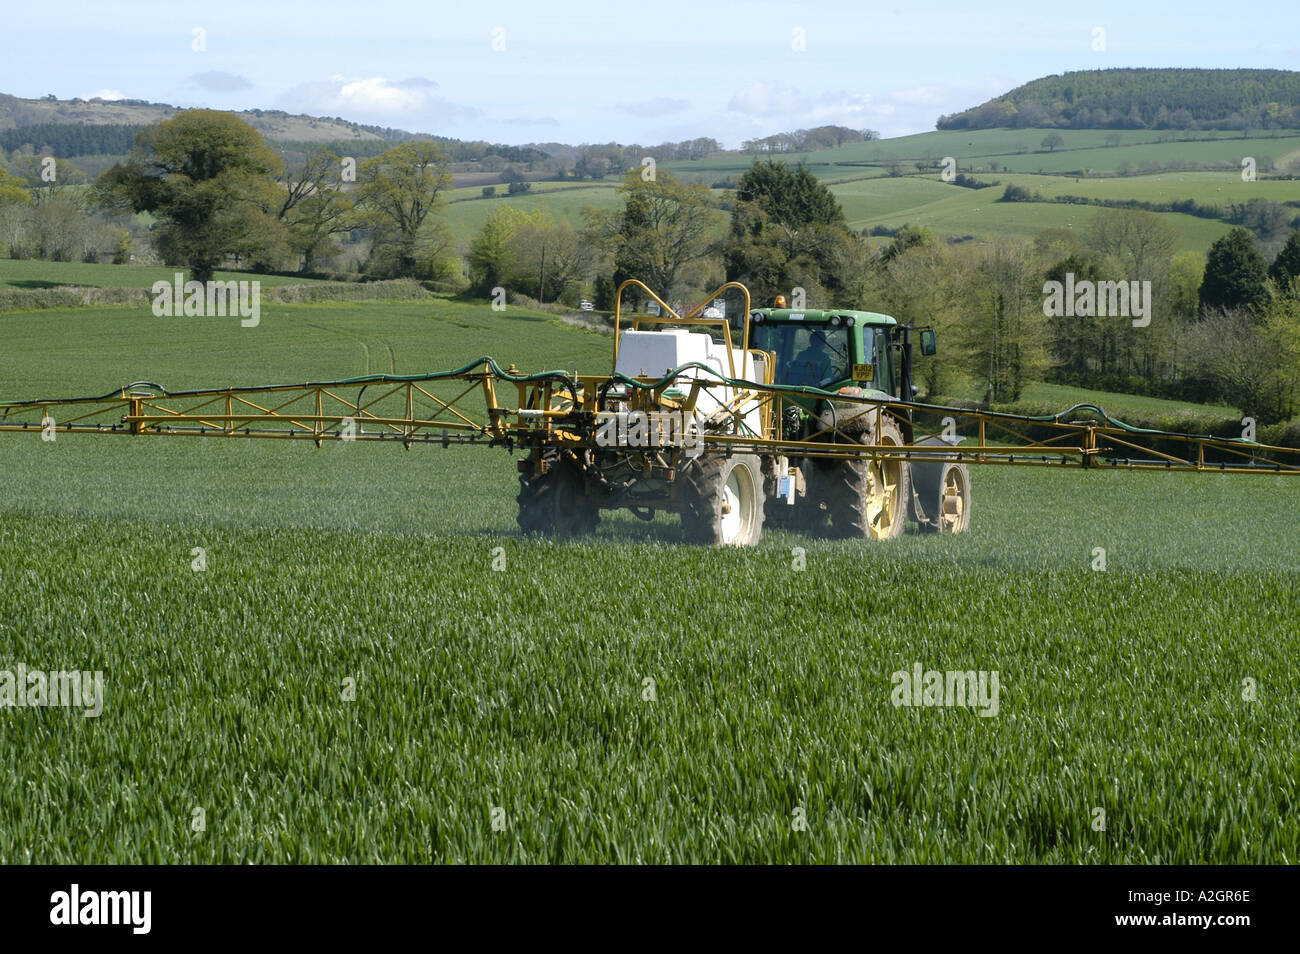 A John Deere tractor and trailed Knight sprayer spraying a young wheat crop in spring - Stock Image